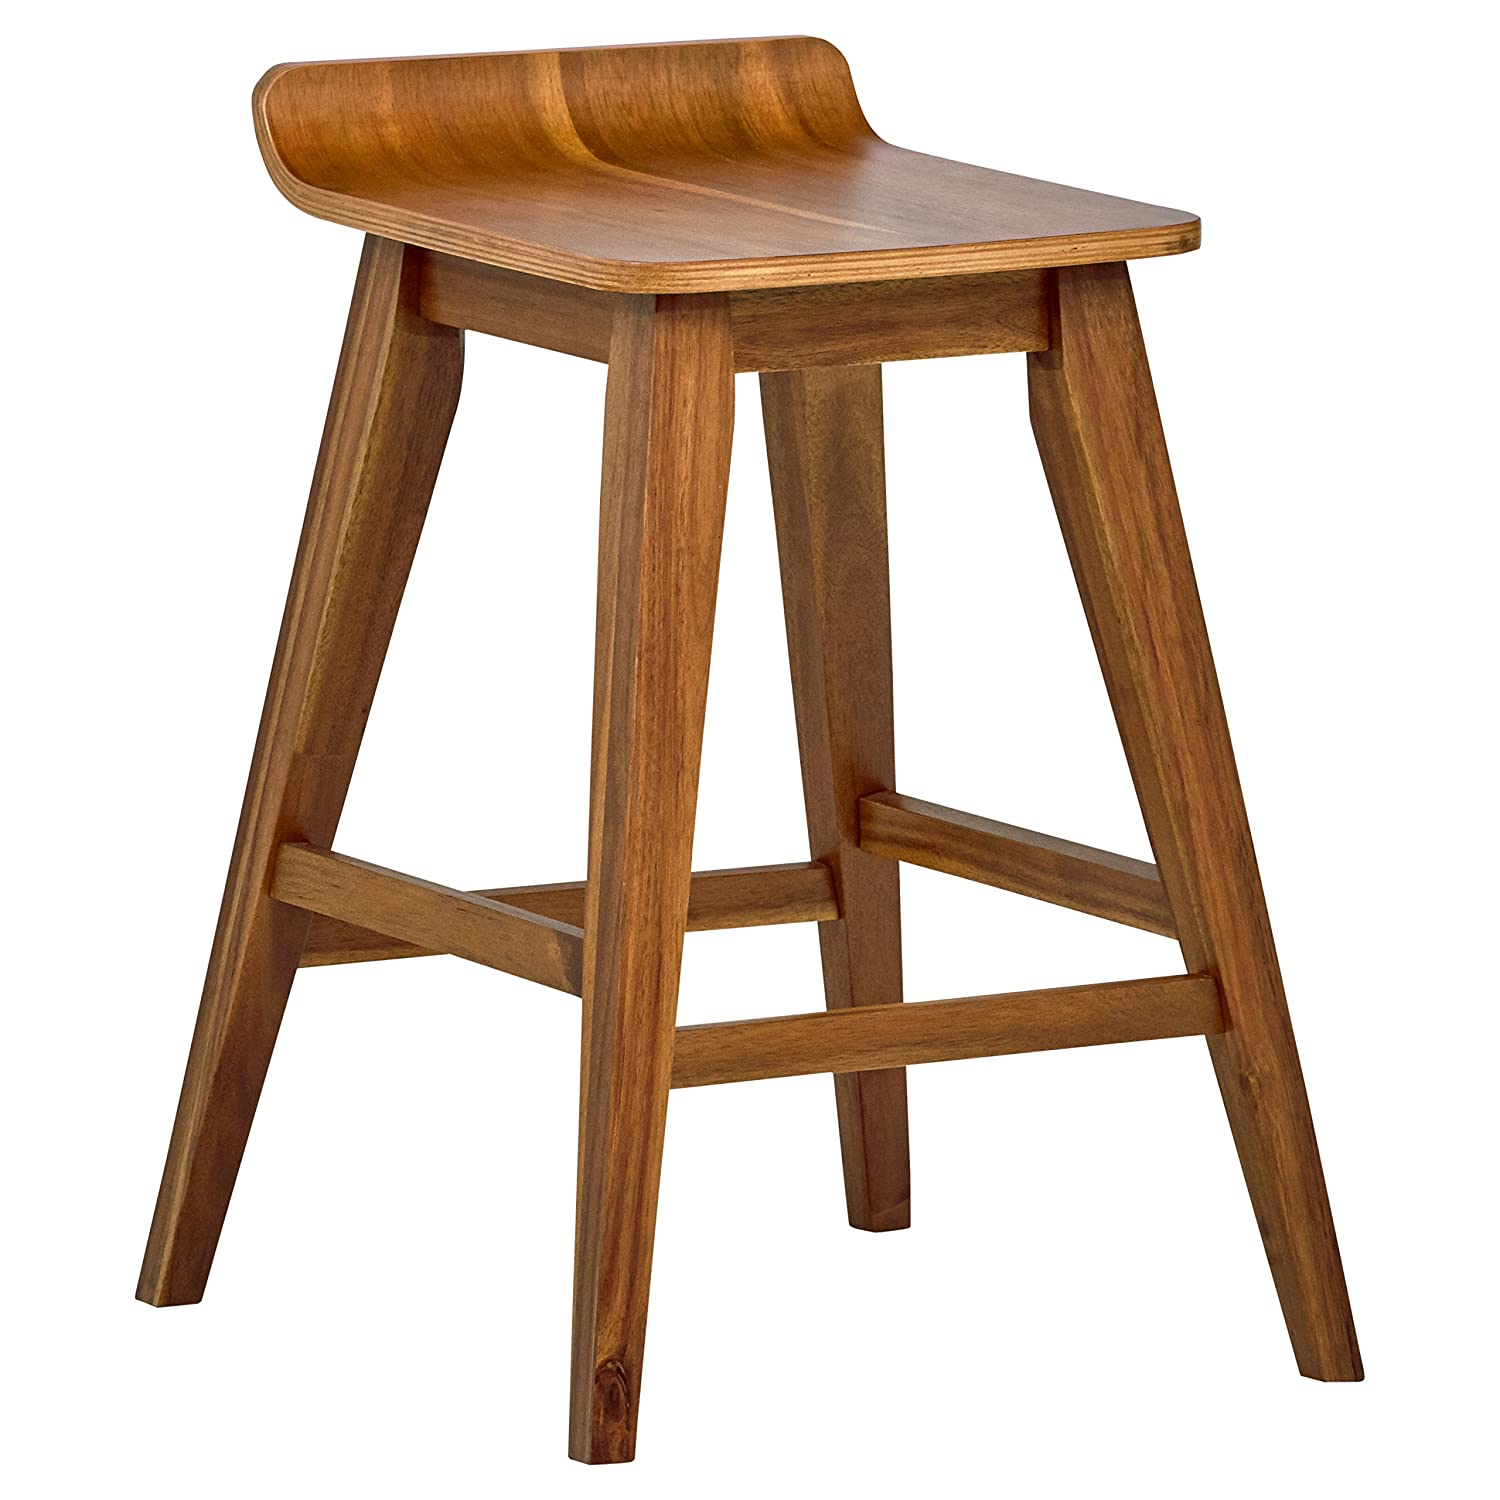 Cool Stone Beam Fremont Rustic Kitchen Counter Saddle Farmhouse Bar Stool 25 5 Inch Height Natural Wood Dailytribune Chair Design For Home Dailytribuneorg